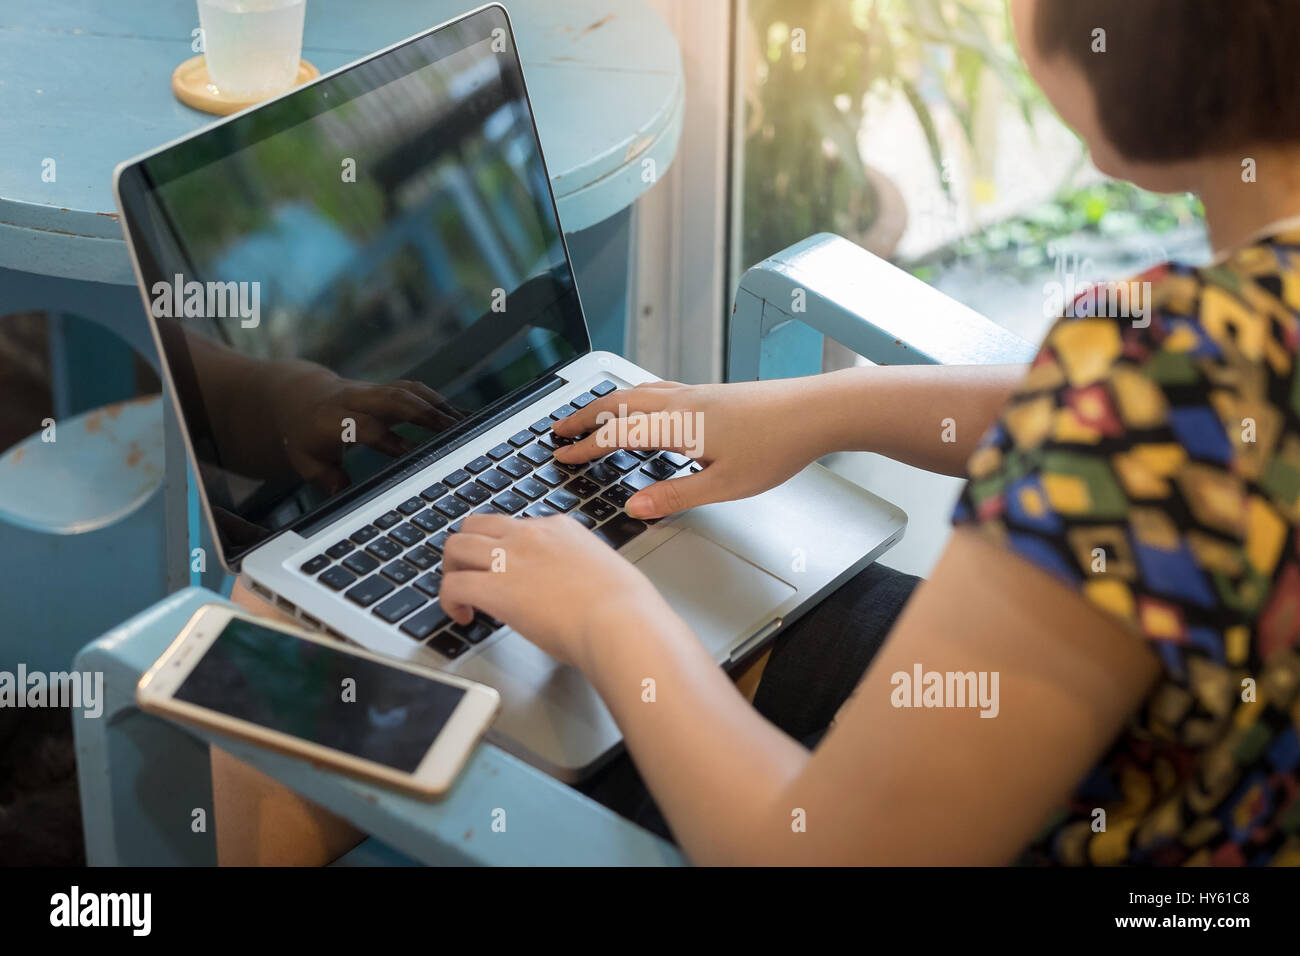 Young Asian woman working online at home with laptop computer. Freelance and outsource worker activity concept. - Stock Image